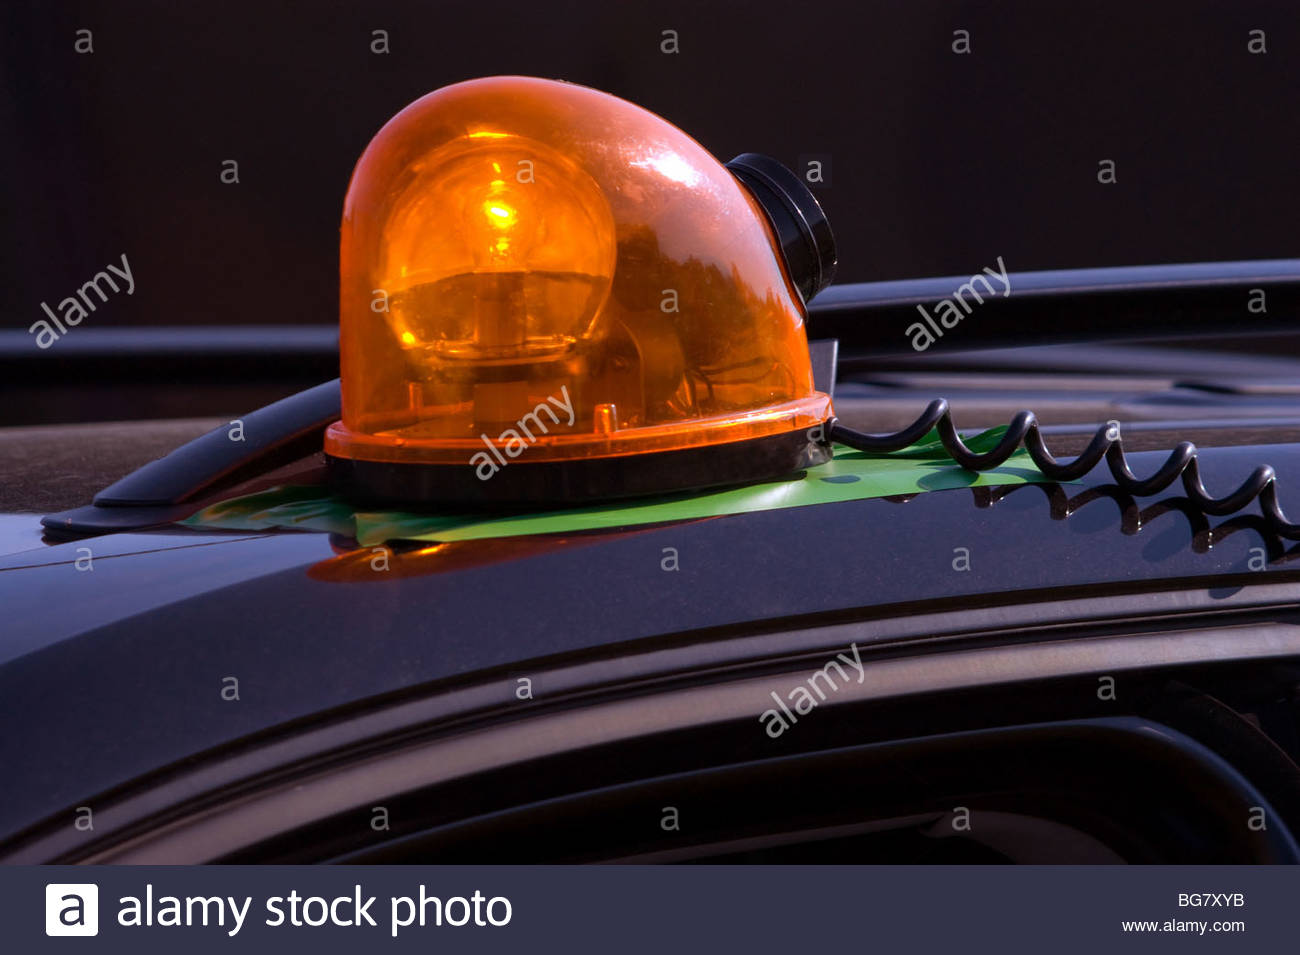 yellow roof light on car - beacon rotate - Stock Image